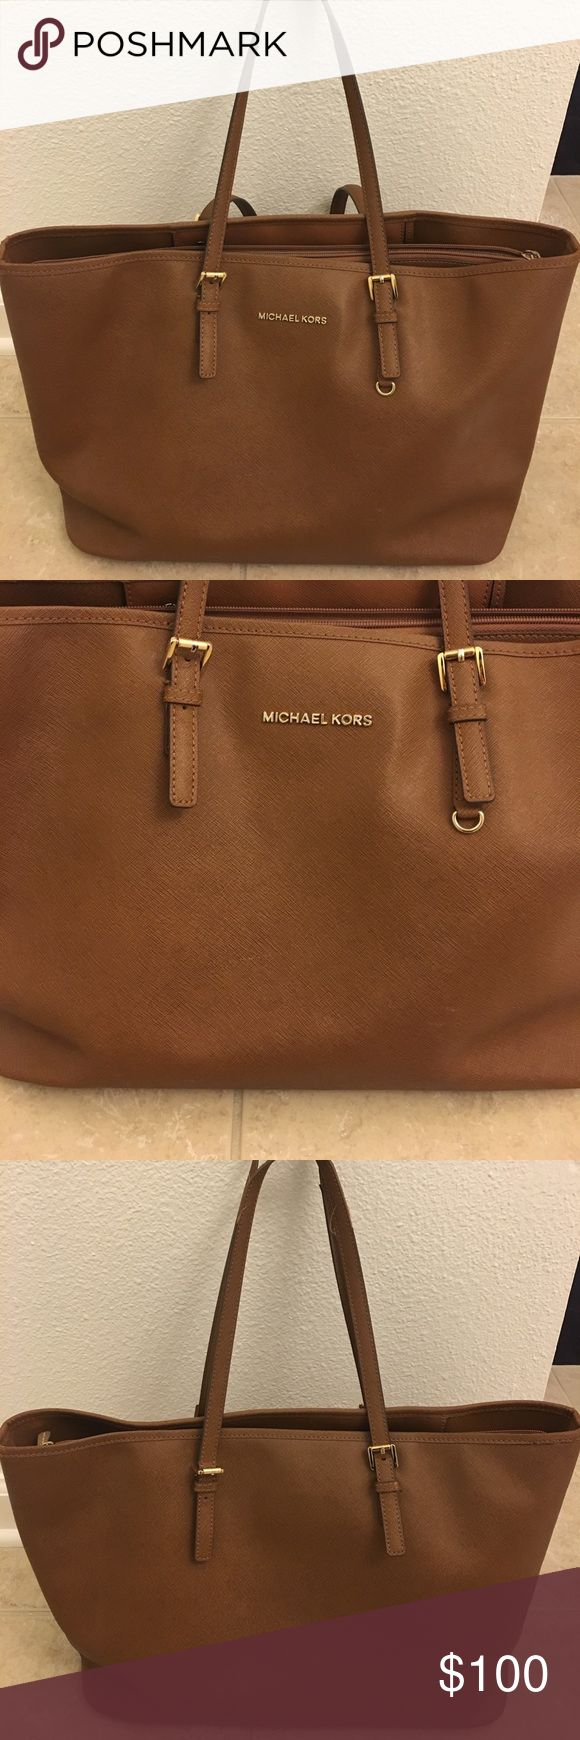 Michael Kors large luggage tote Michael Kors large luggage tote. Great for traveling for business, can fit laptop iPad and phone. Tons of compartments. Michael Kors Bags Totes